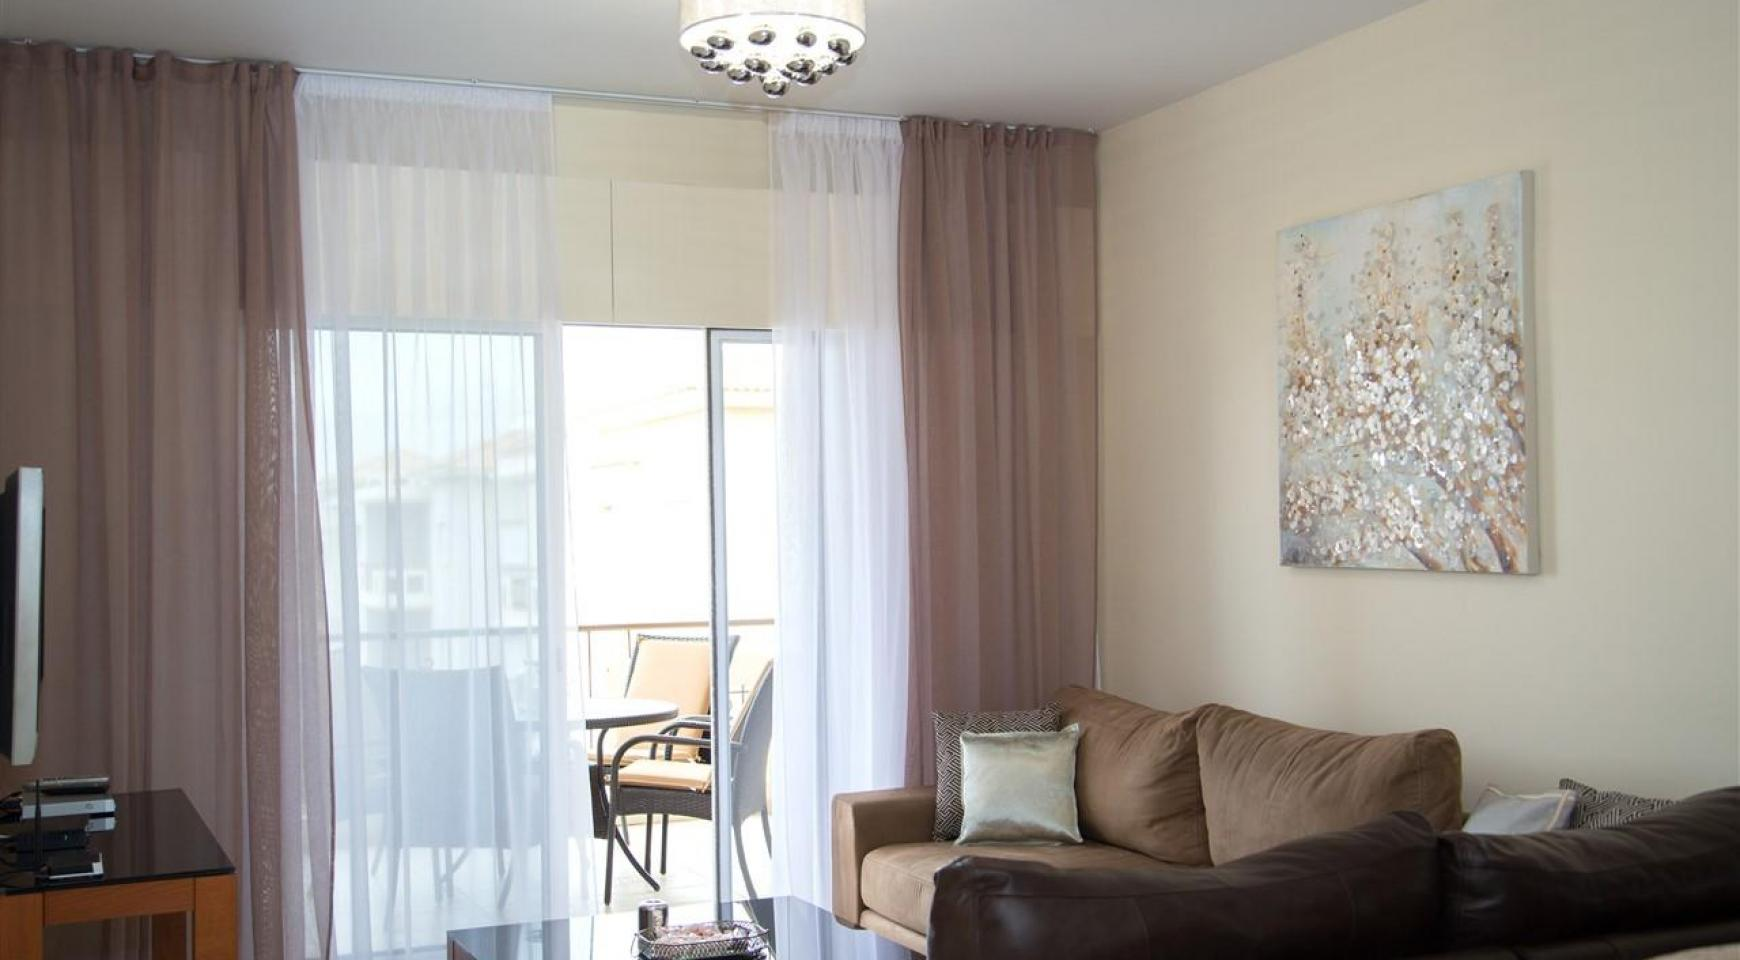 Luxury 2 Bedroom Apartment Mesogios Iris 304 in the Tourist area near the Beach - 1